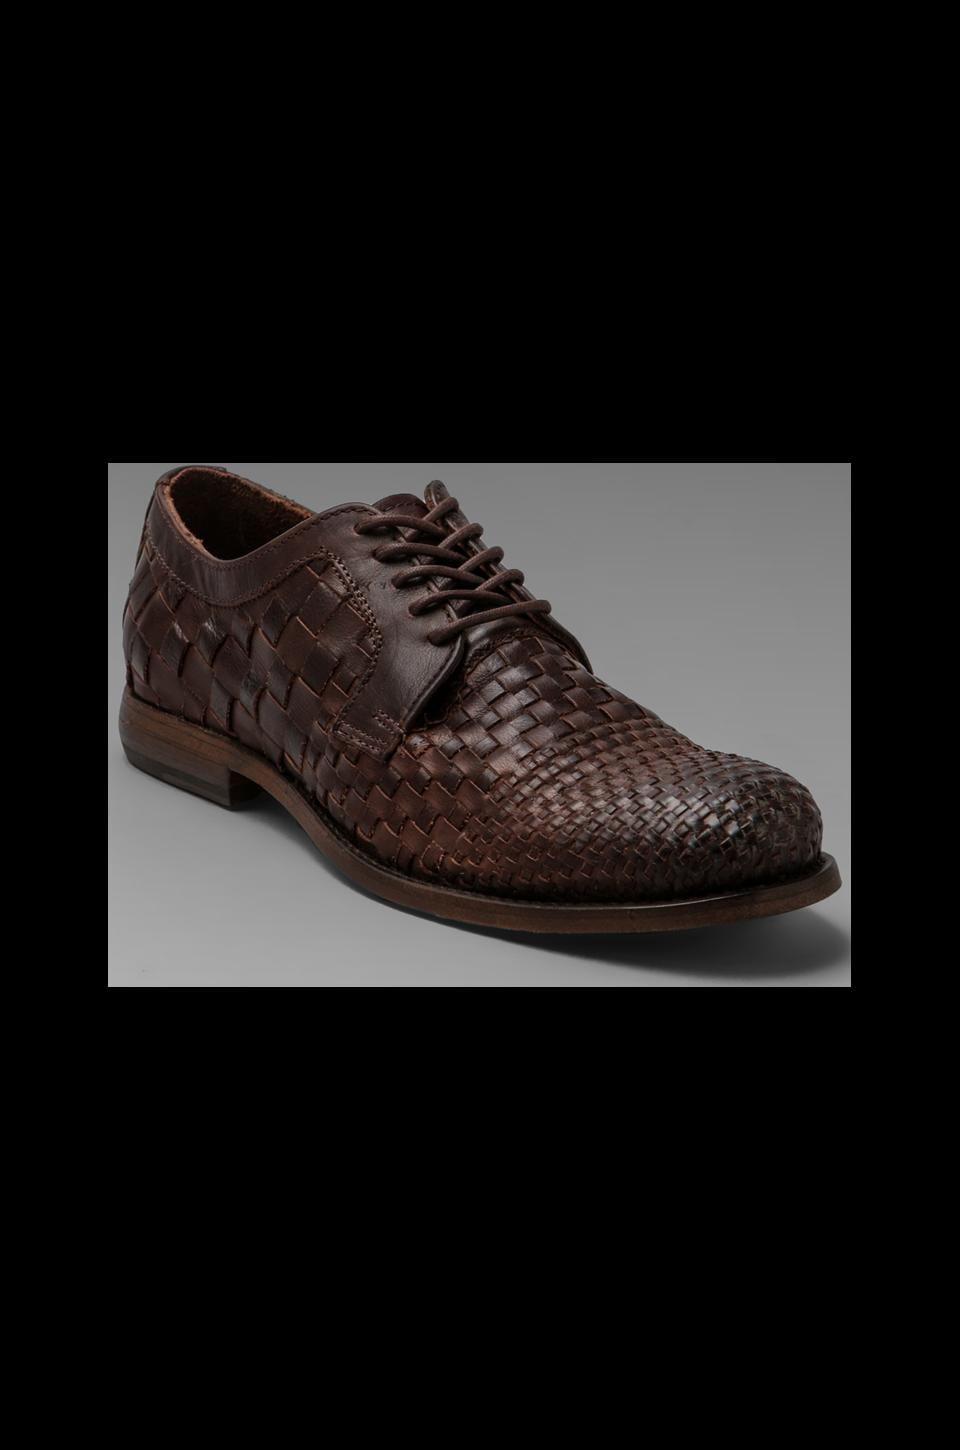 Frye Manny Woven Oxford in Dark Brown